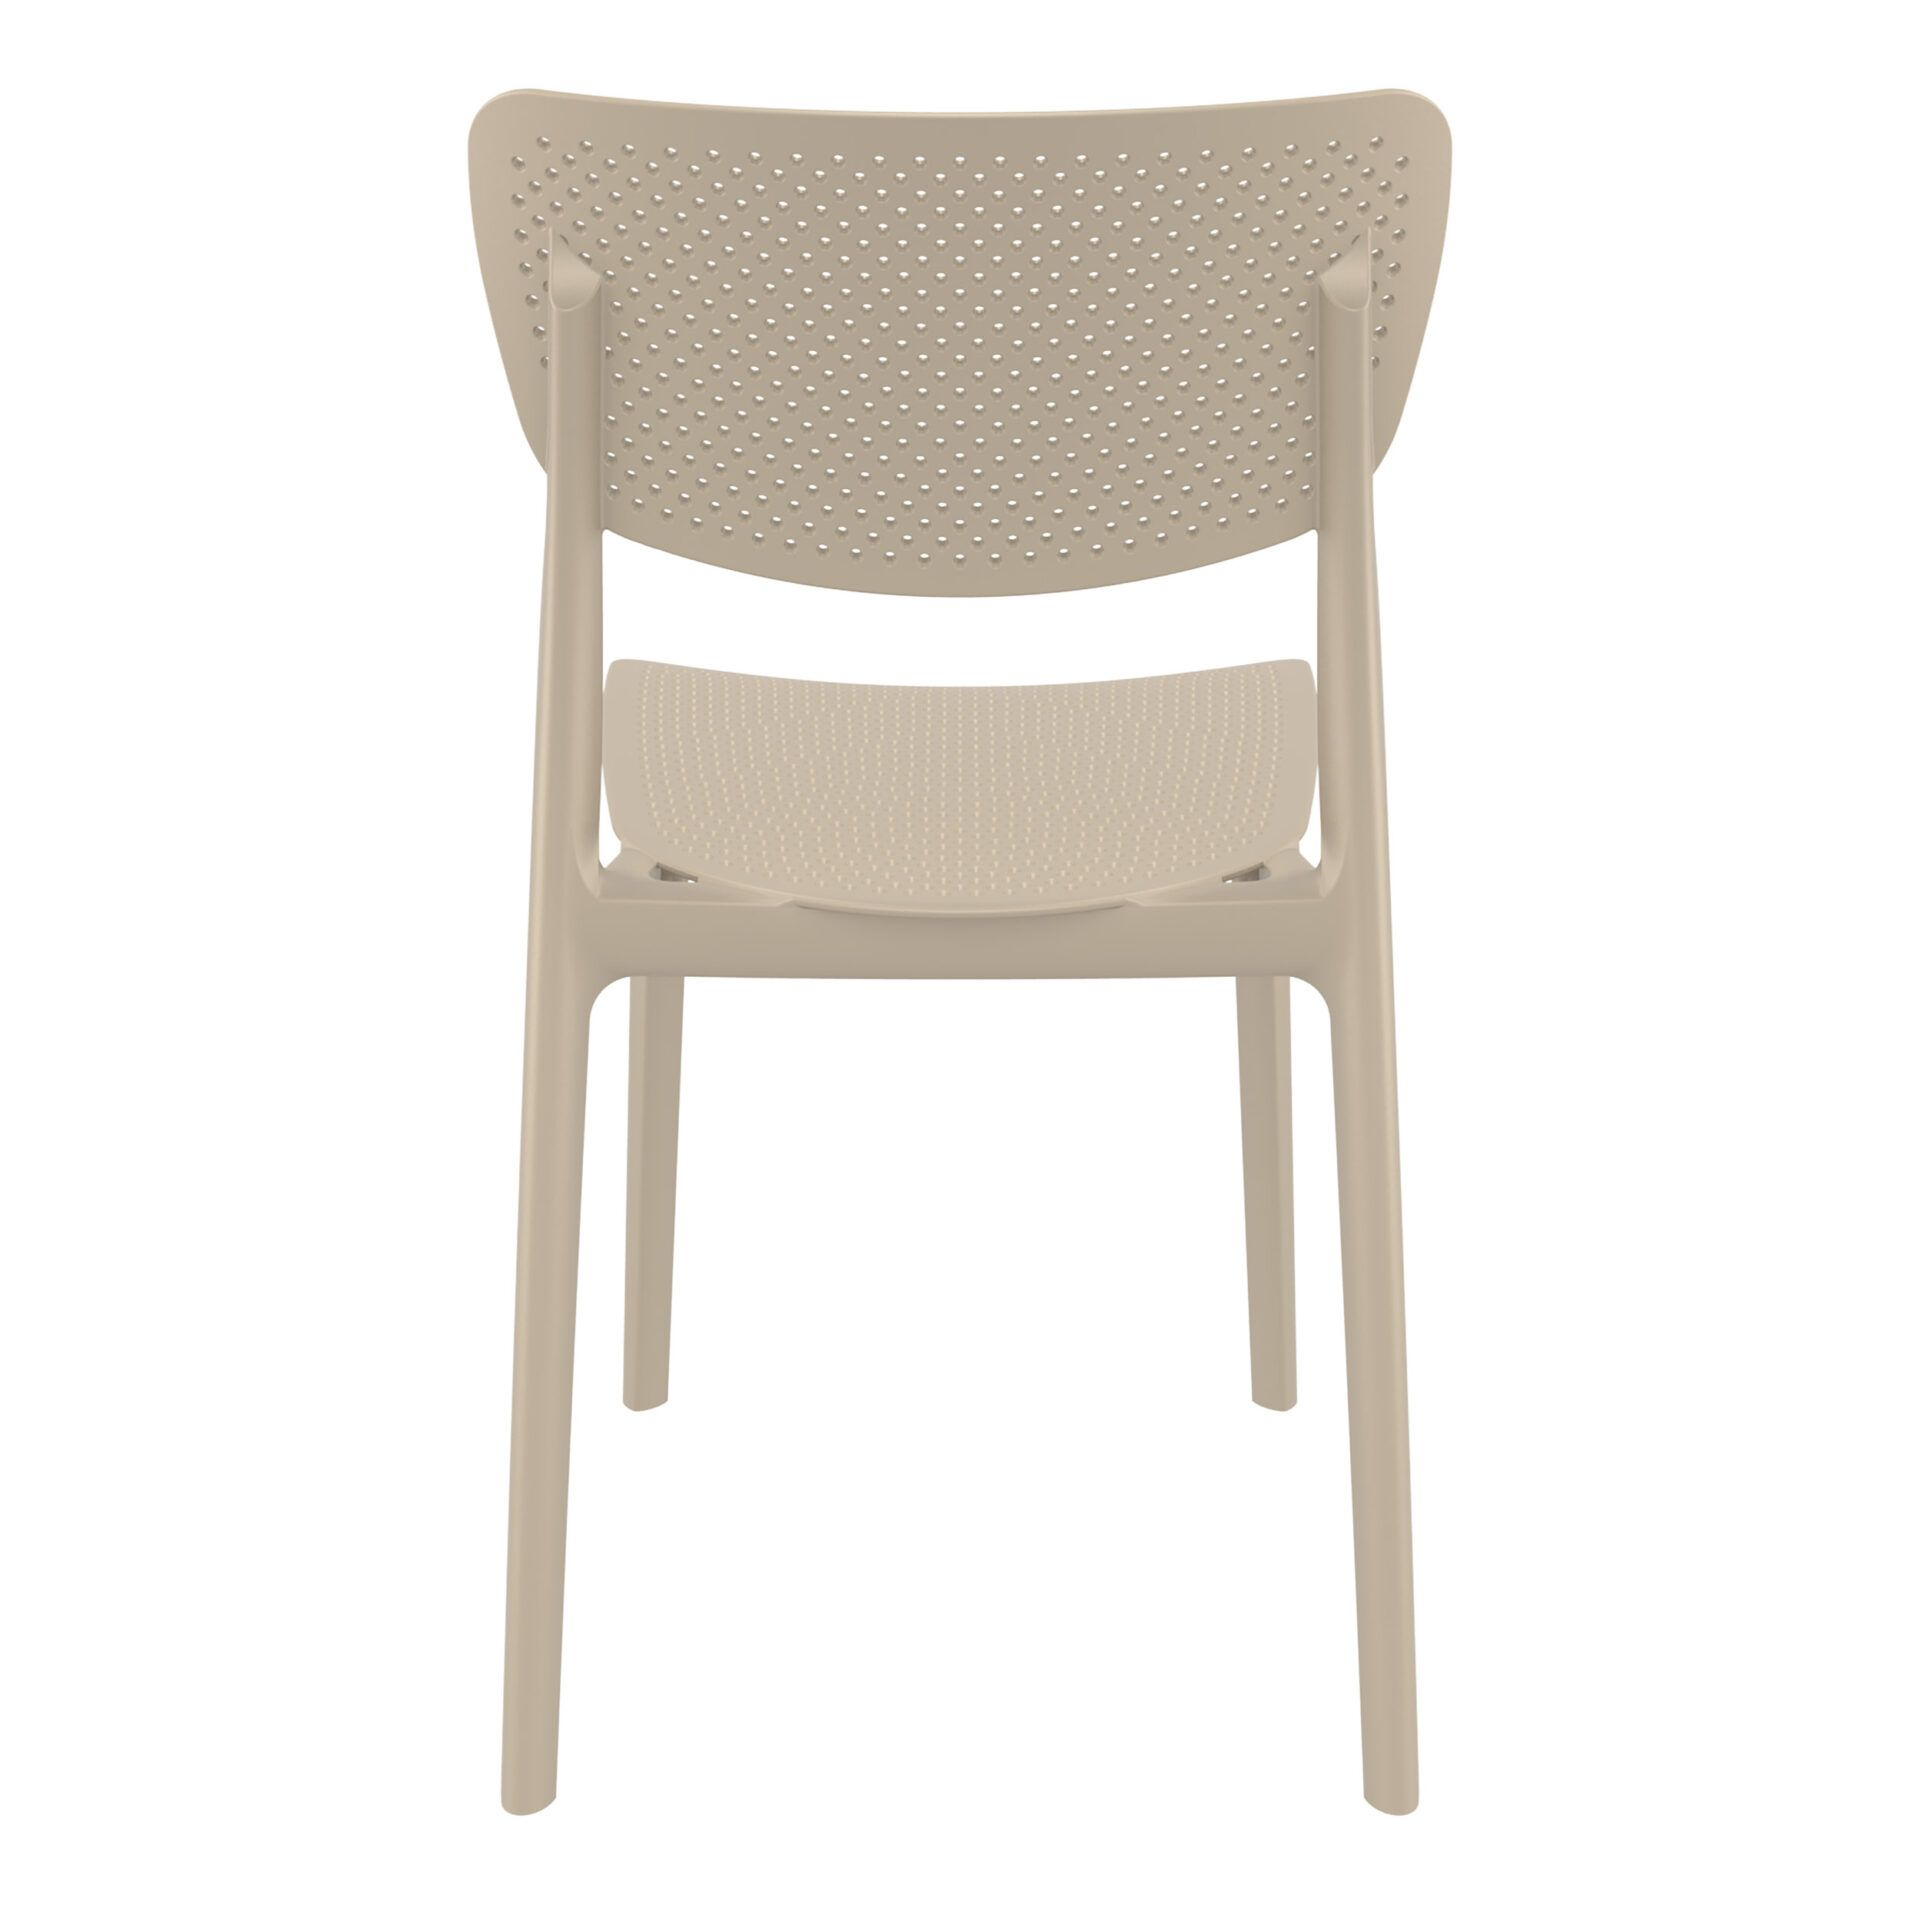 polypropylene hospitality seating lucy chair taupe back